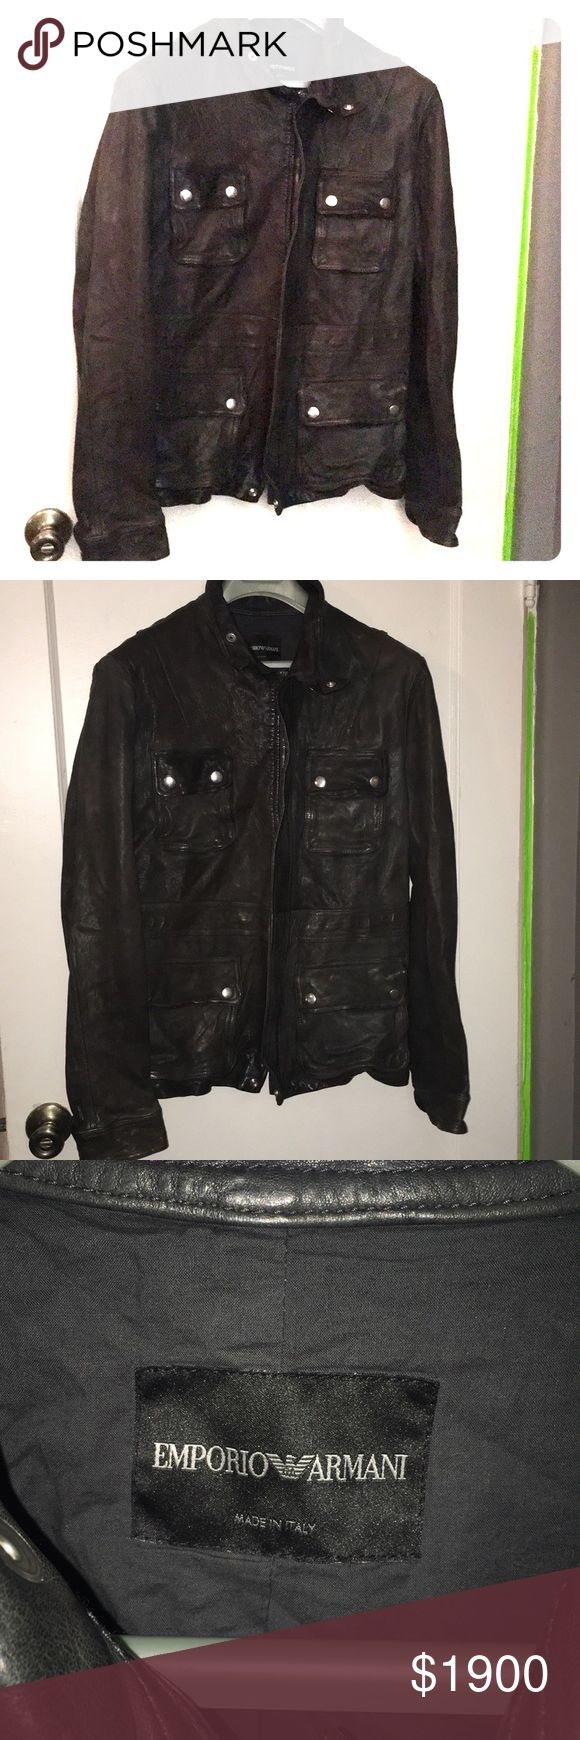 Brand New with Tag Emporio Armani Leather Jacket. This jacket is too legit to quit- as MC Hammer would say- the pictures speak for themselves, still that new leather smell- never worn. I think unisex- buy for you or your man or woman! Xoxo DEEP Chocolate Brown. Emporio Armani Jackets & Coats